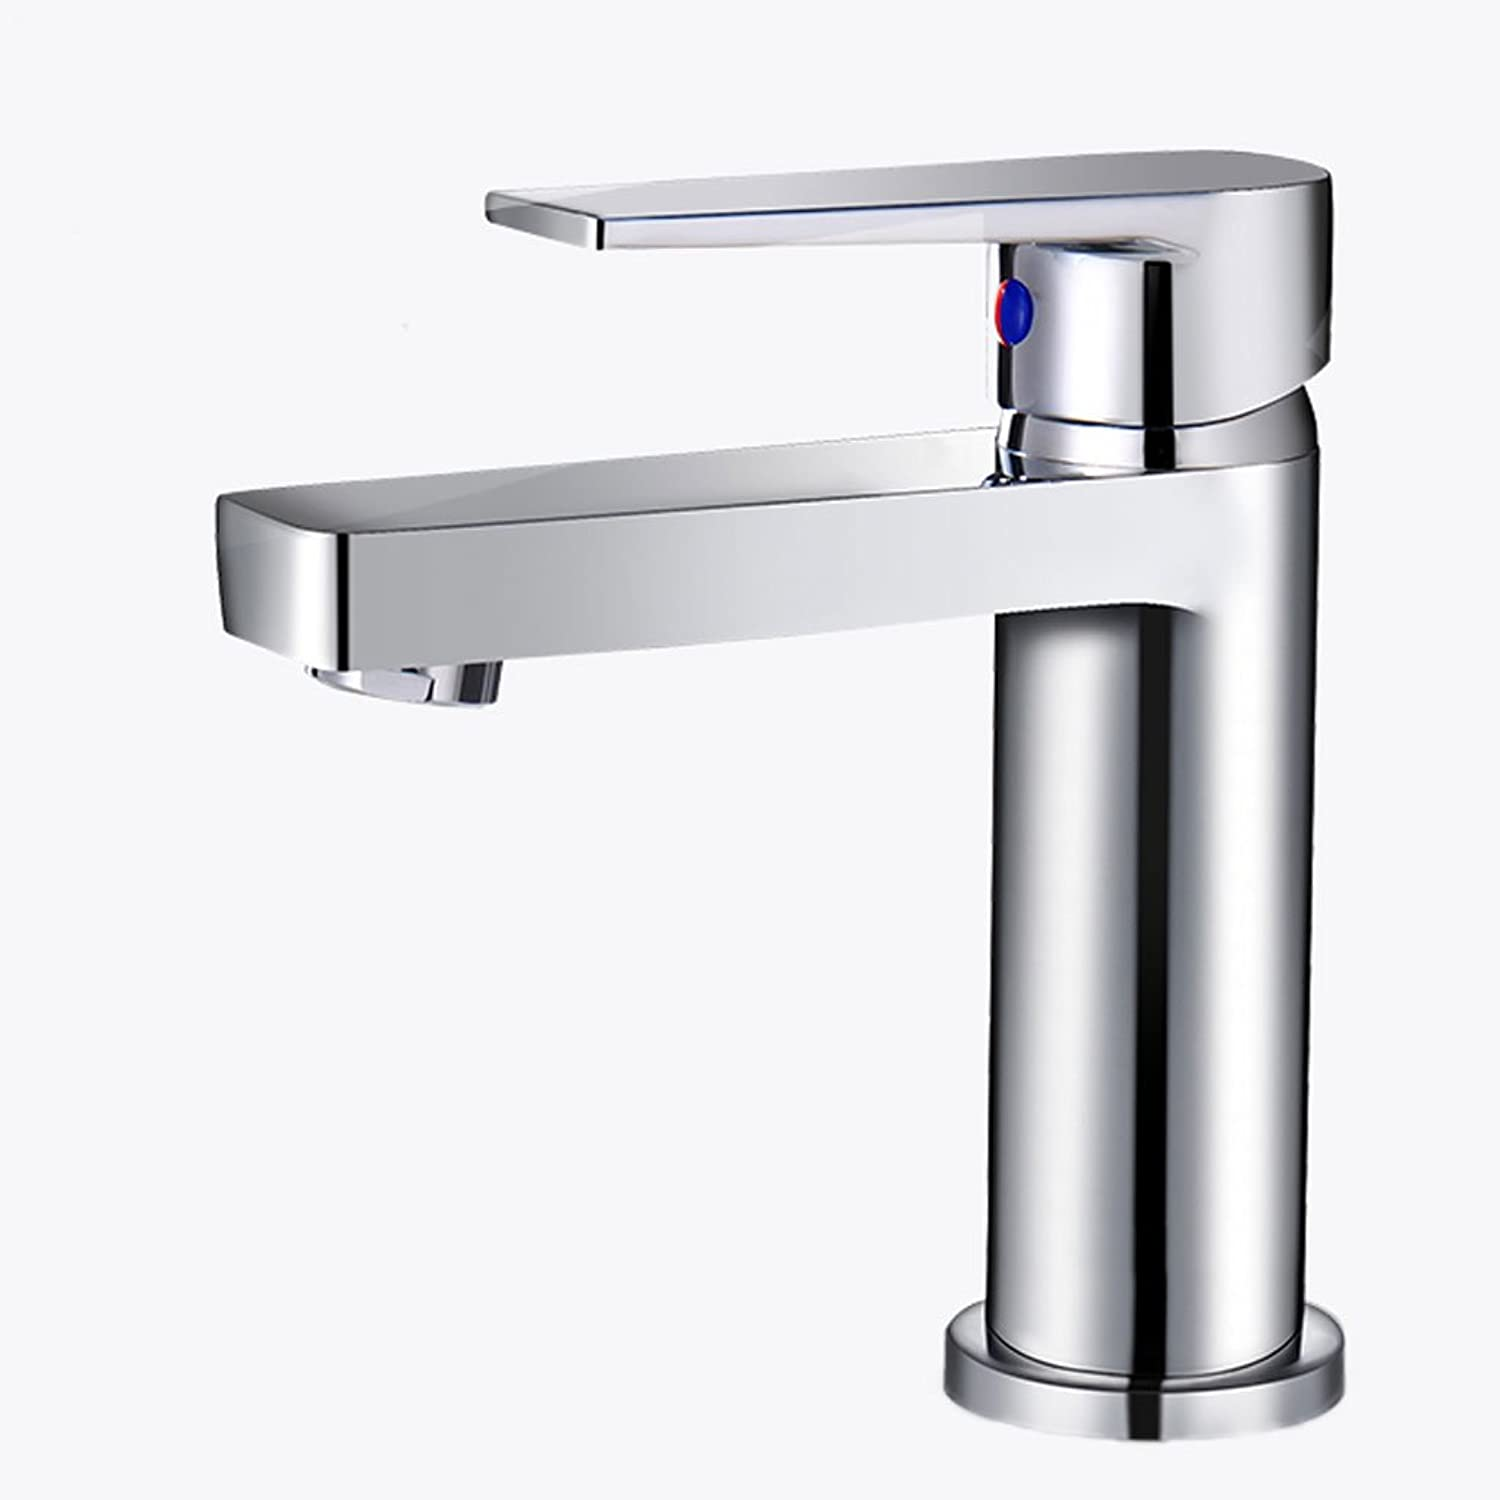 Full Copper Basin Faucet, Electroplated Hot and Cold Bathroom Water Tap